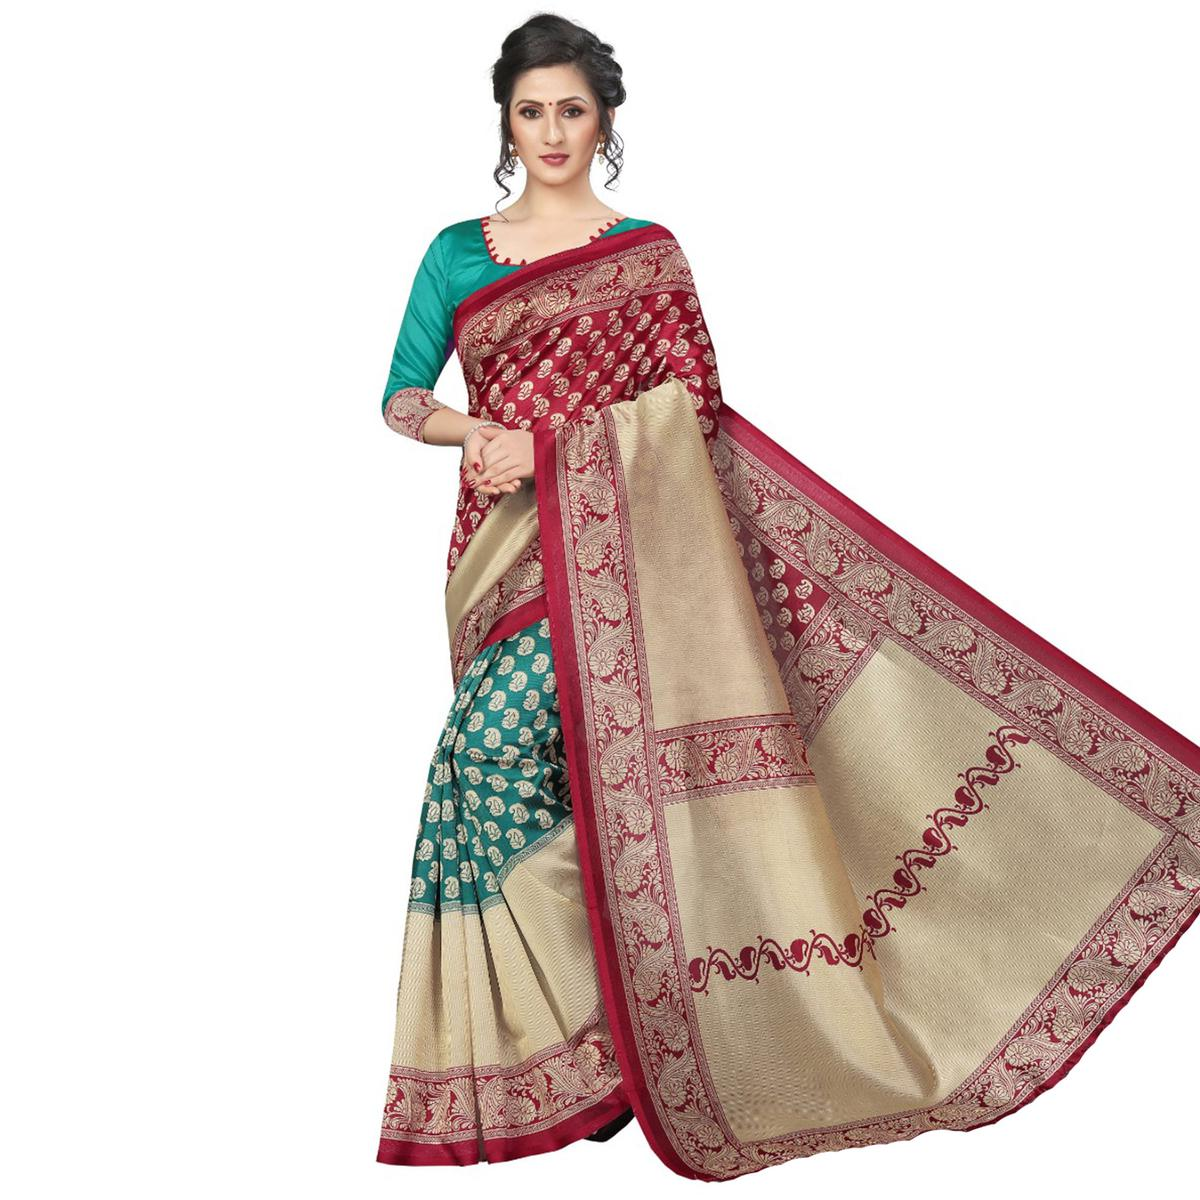 Majesty Turquoise Green-Maroon Colored Festive Wear Art Silk Saree